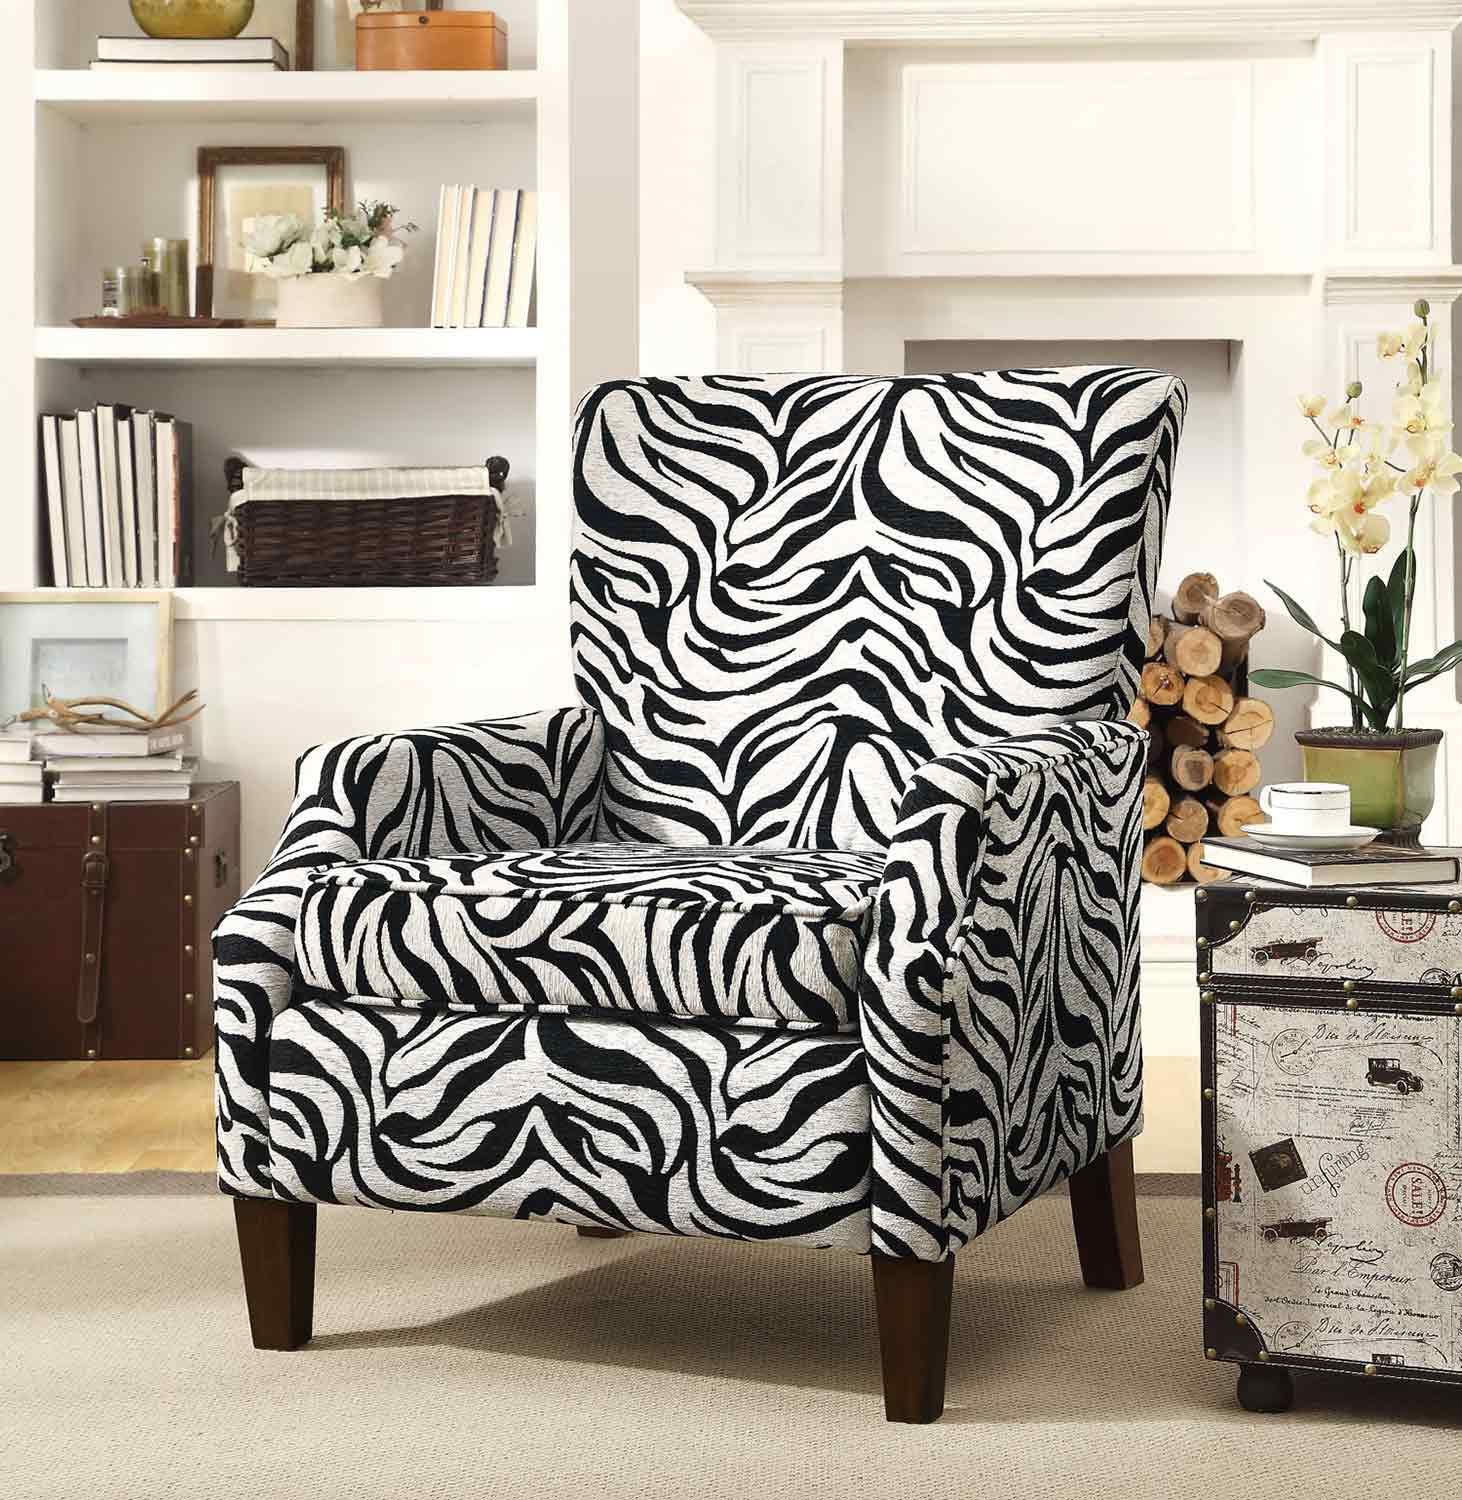 Coaster 10 Accent Chair  Printed chair living room, Pattern